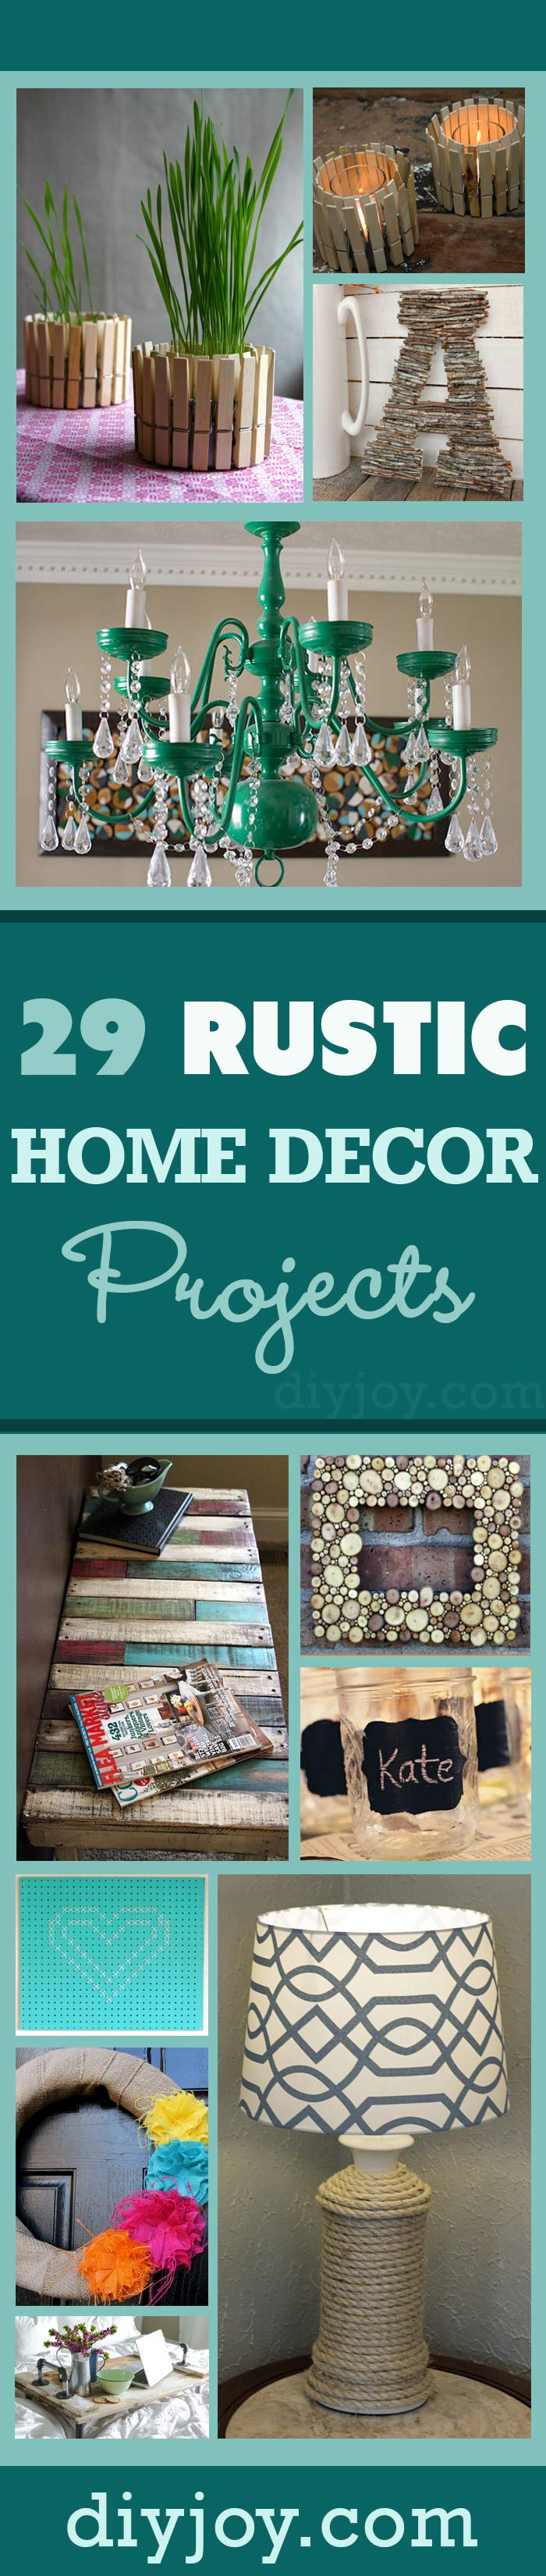 29 rustic diy home decor ideas diy home decor ideas for creative do it yourself rustic and vintage furniture and accessories solutioingenieria Image collections